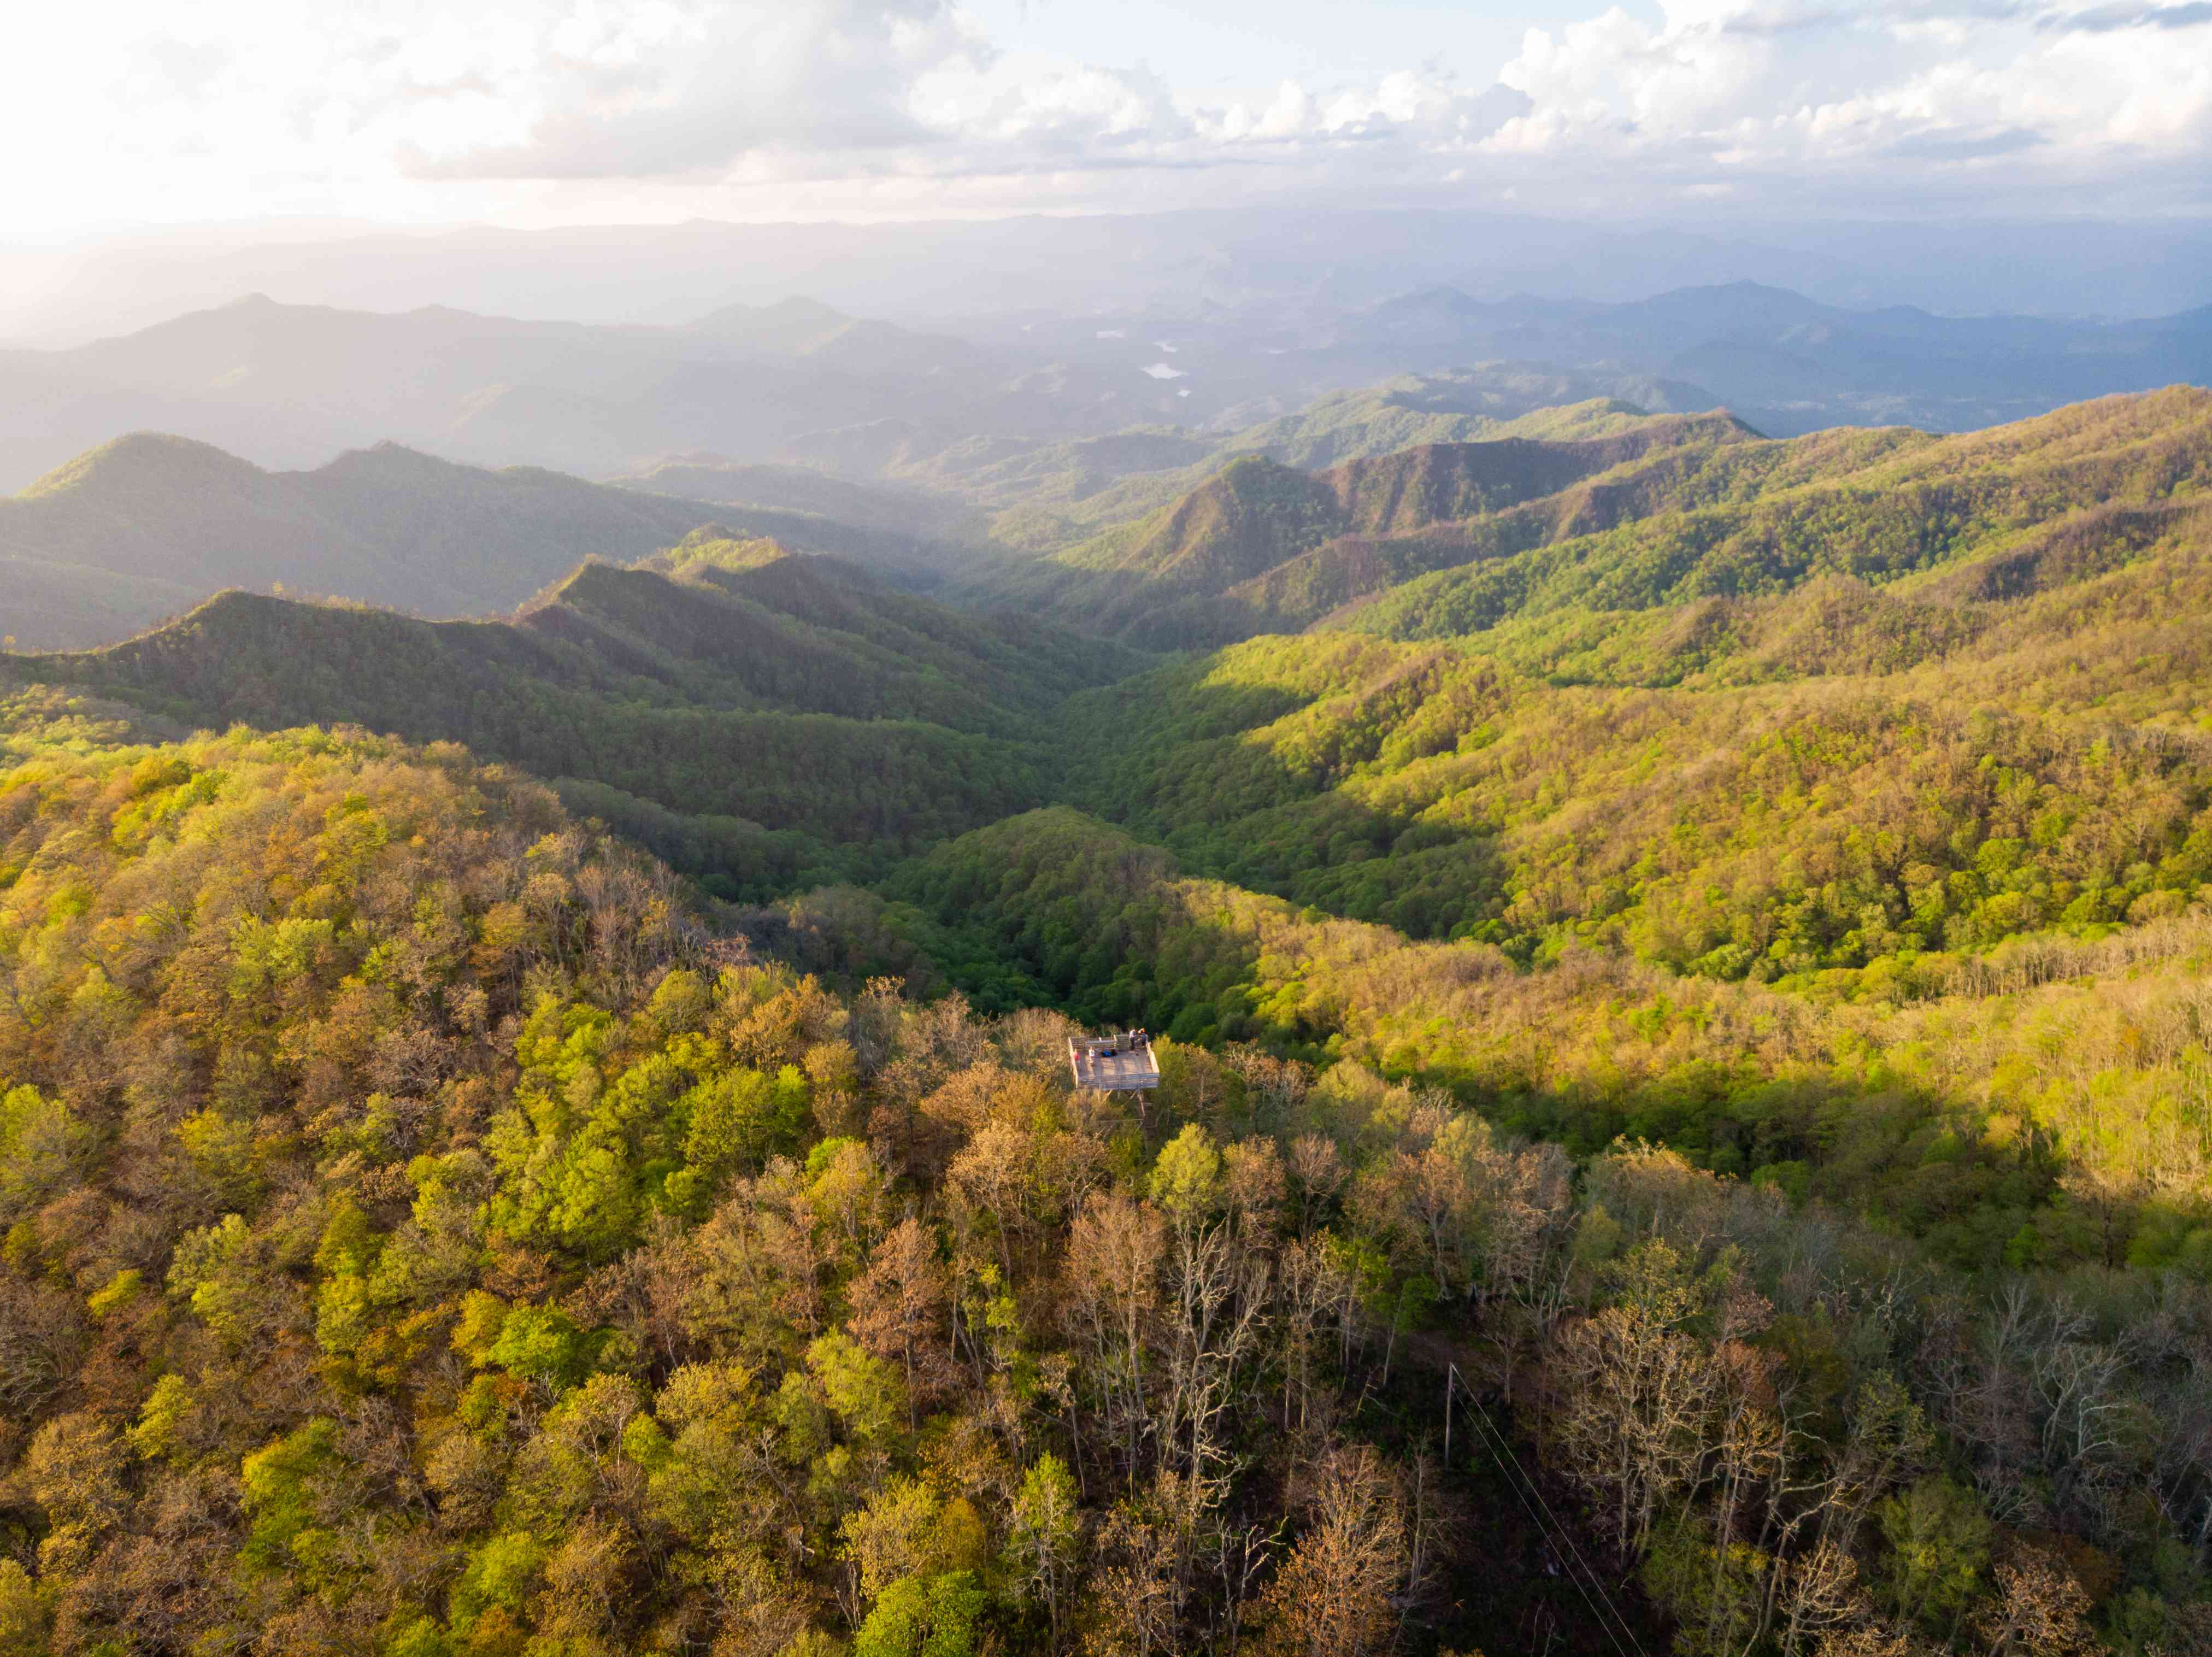 Aerial View of Wesser Bald Fire Tower in Western North Carolina at Sunset